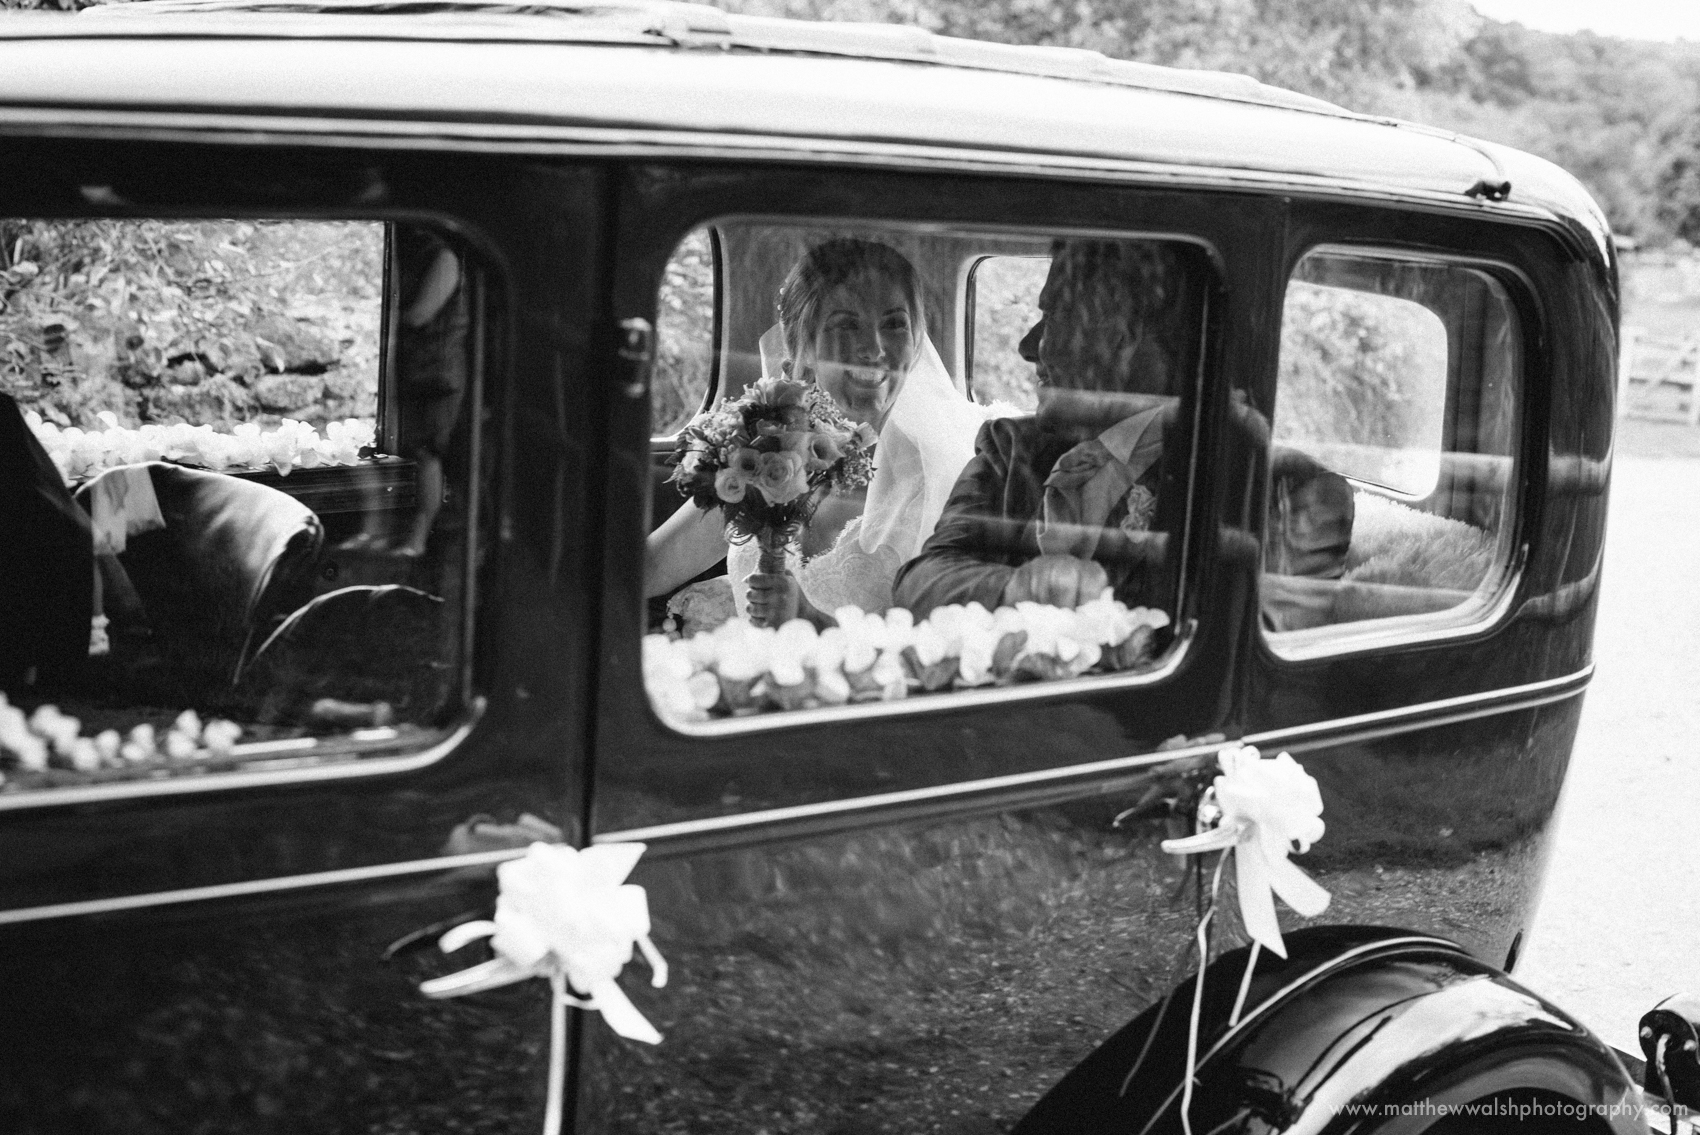 The bride with he father arrive at the ceremony in her wedding car